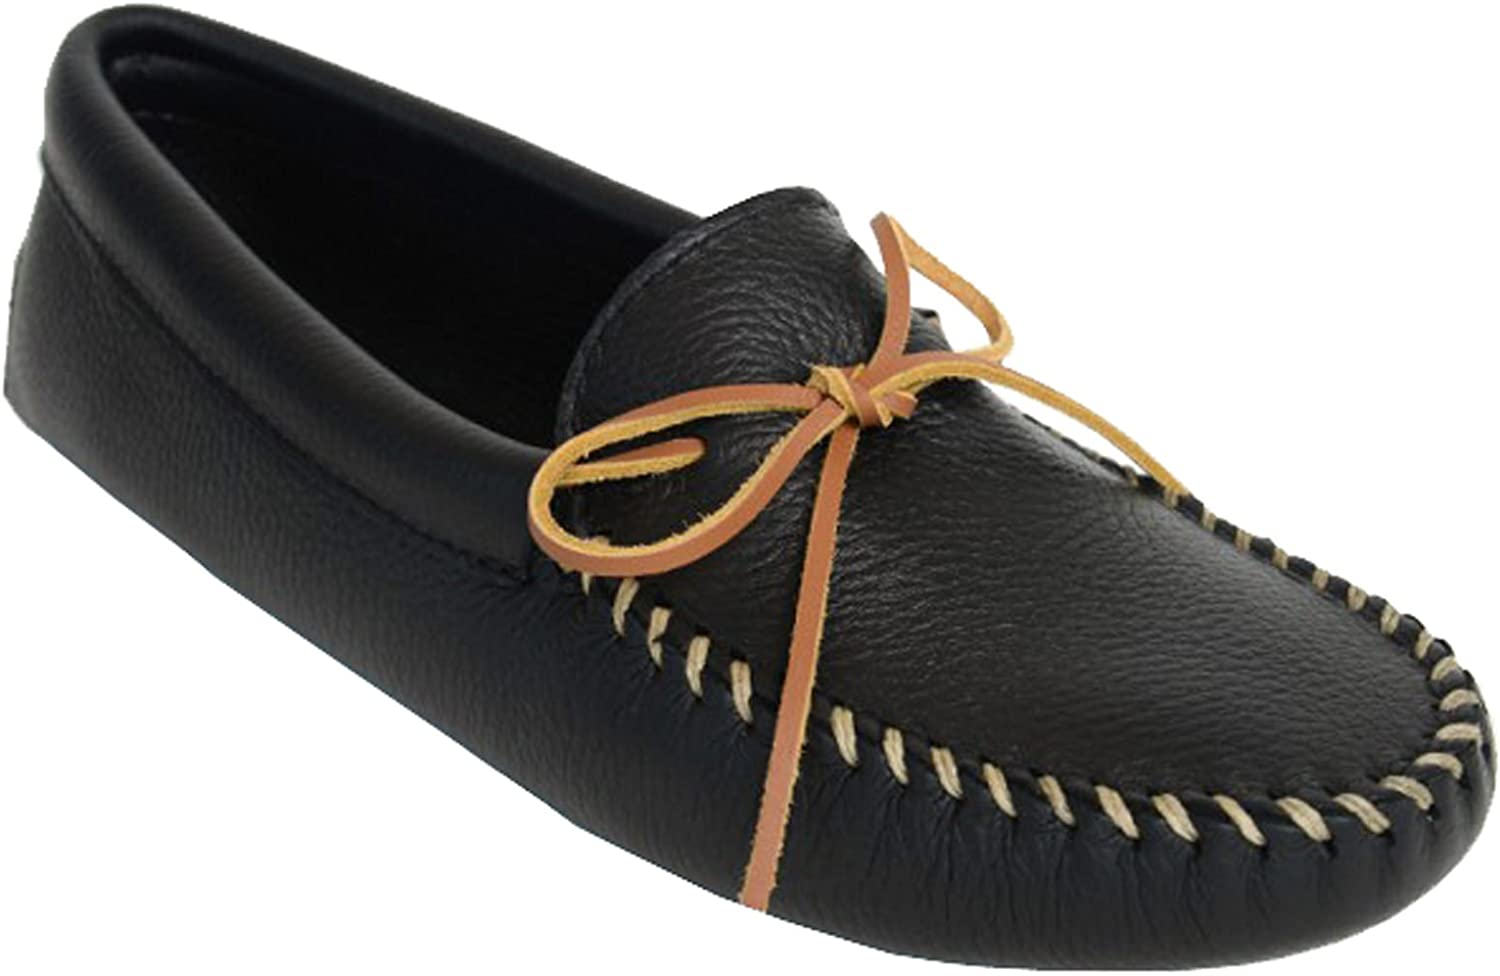 Minnetonka Men's Double Deerskin Softsole Moccasin